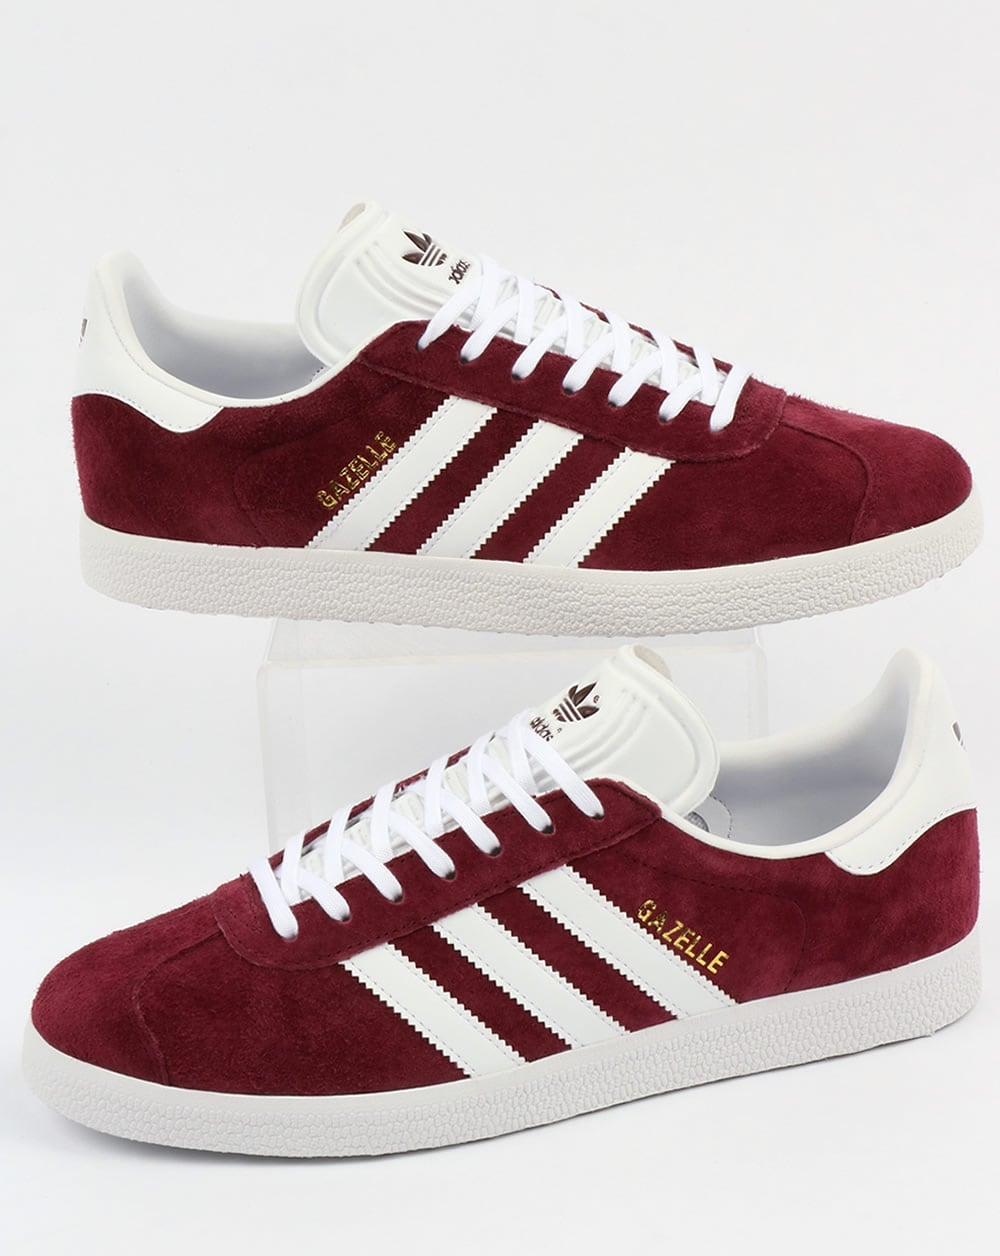 calentar Malabares alto  Adidas Gazelle Trainers Maroon/White,originals,shoes,mens,burgundy